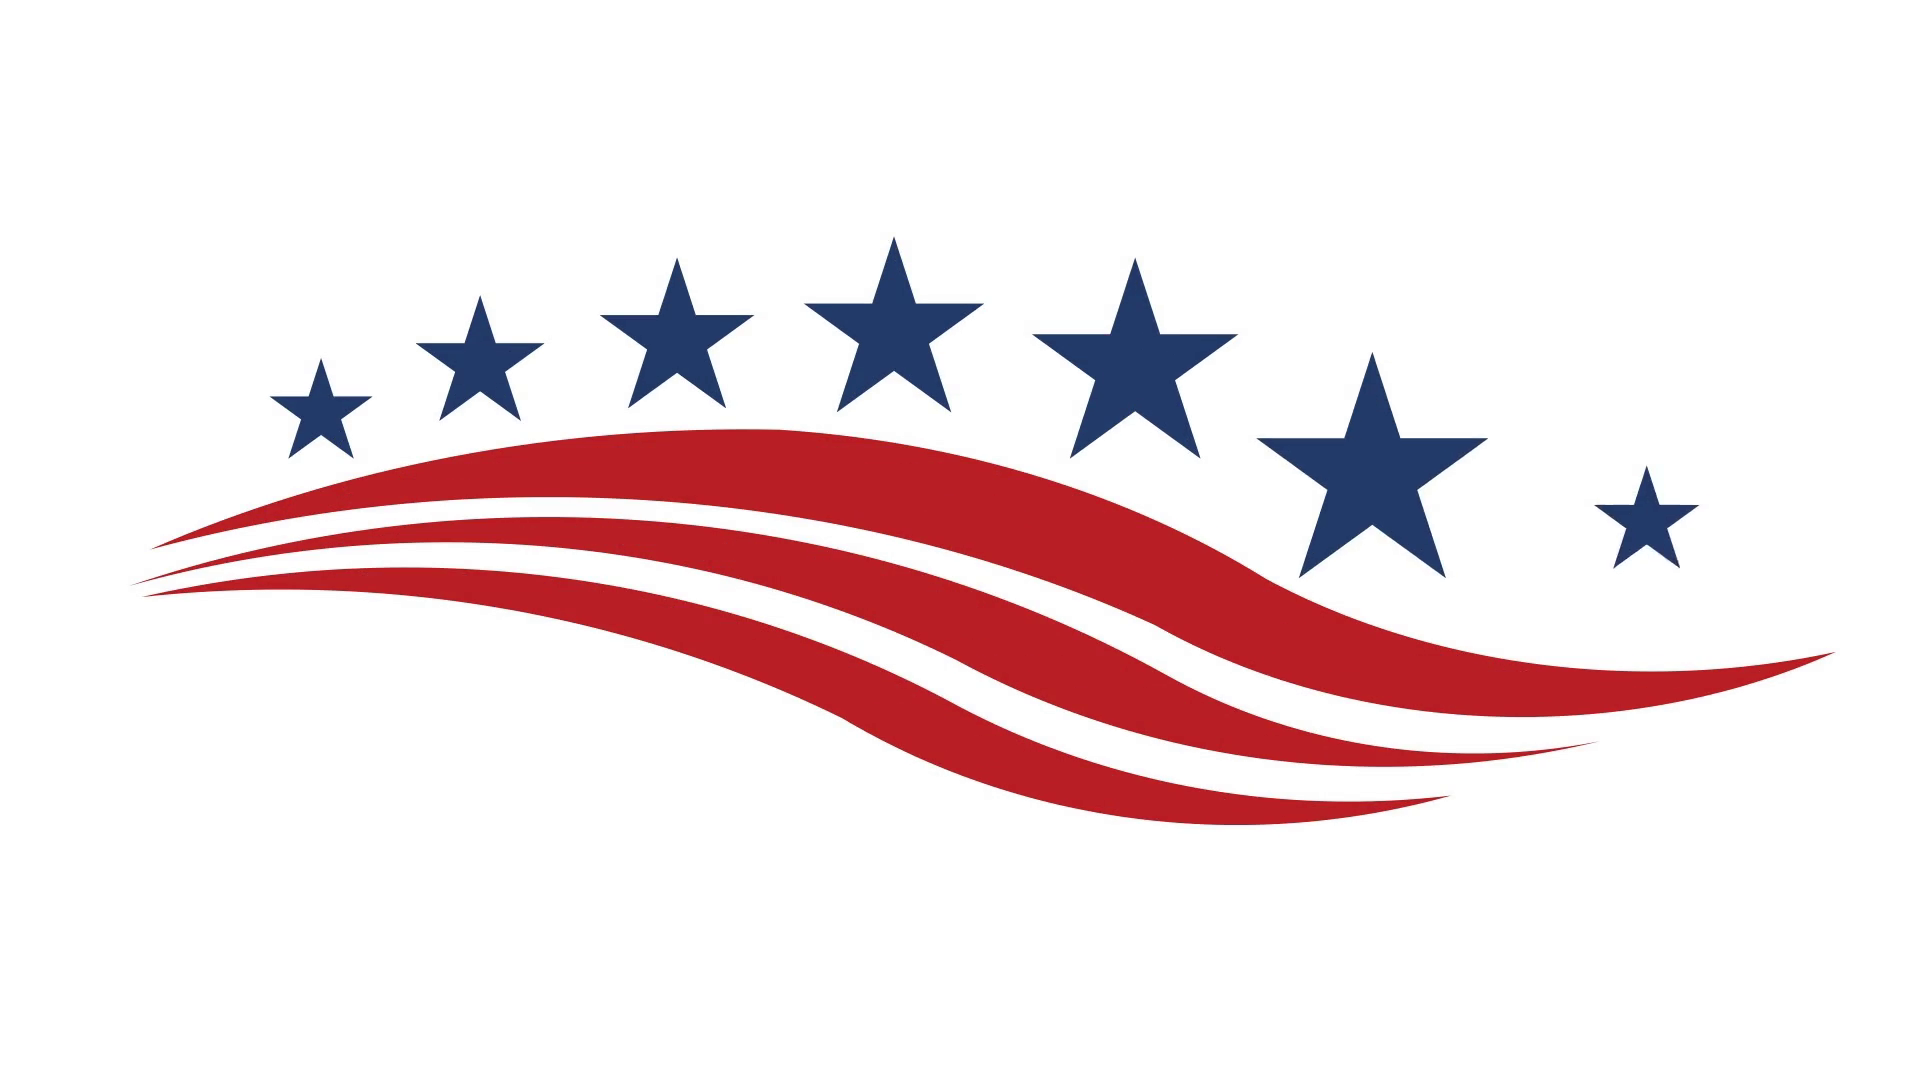 America Stars and Stripes Video Logo Animation, Motion Graphic Motion  Background.